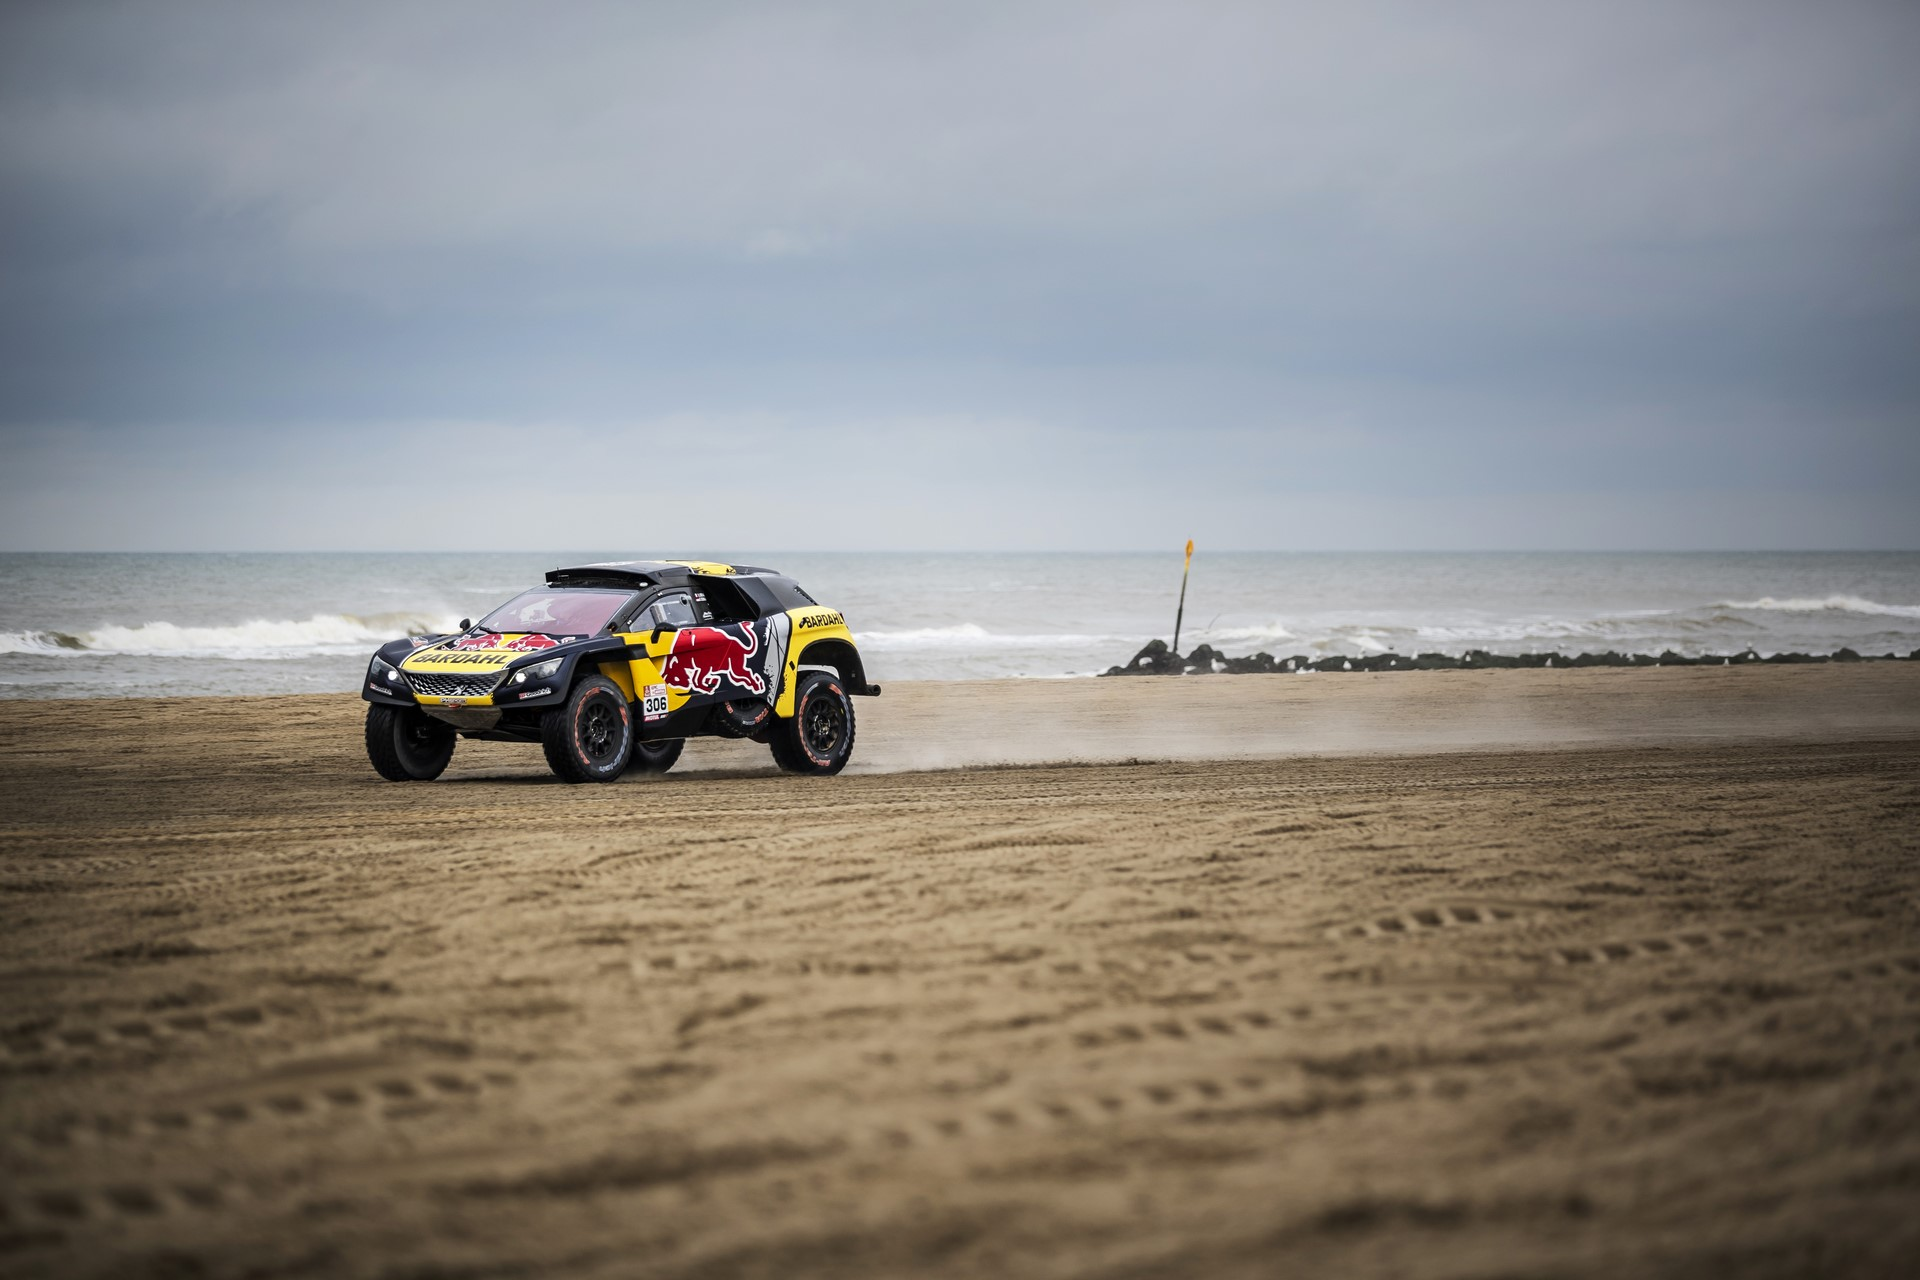 Sebastian Loeb performs during the Red Bull Knock Out in Scheveningen, The Netherlands on Saturday 10 November, 2018